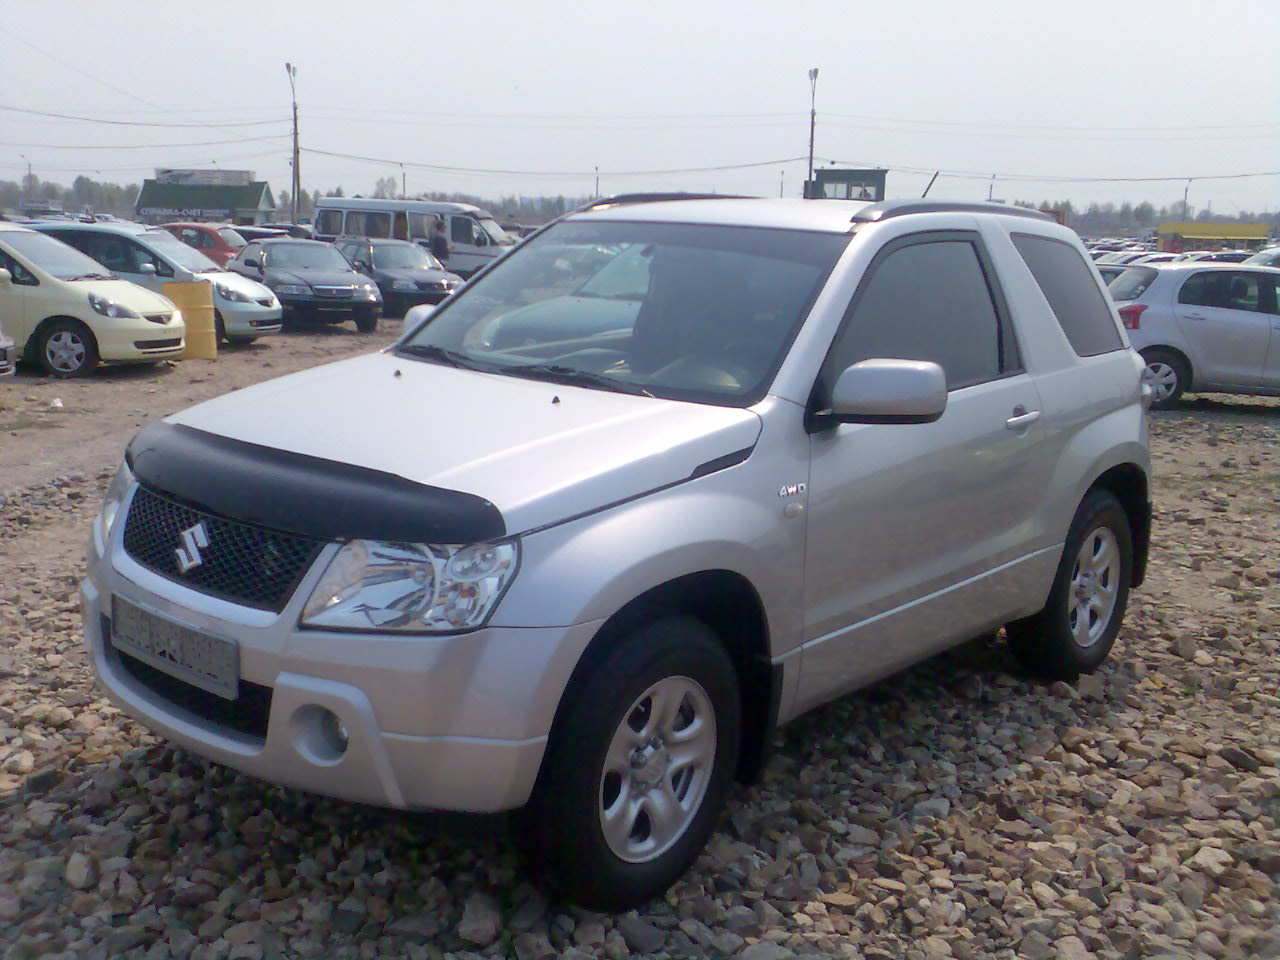 used 2006 suzuki grand vitara photos 1600cc gasoline manual for sale. Black Bedroom Furniture Sets. Home Design Ideas